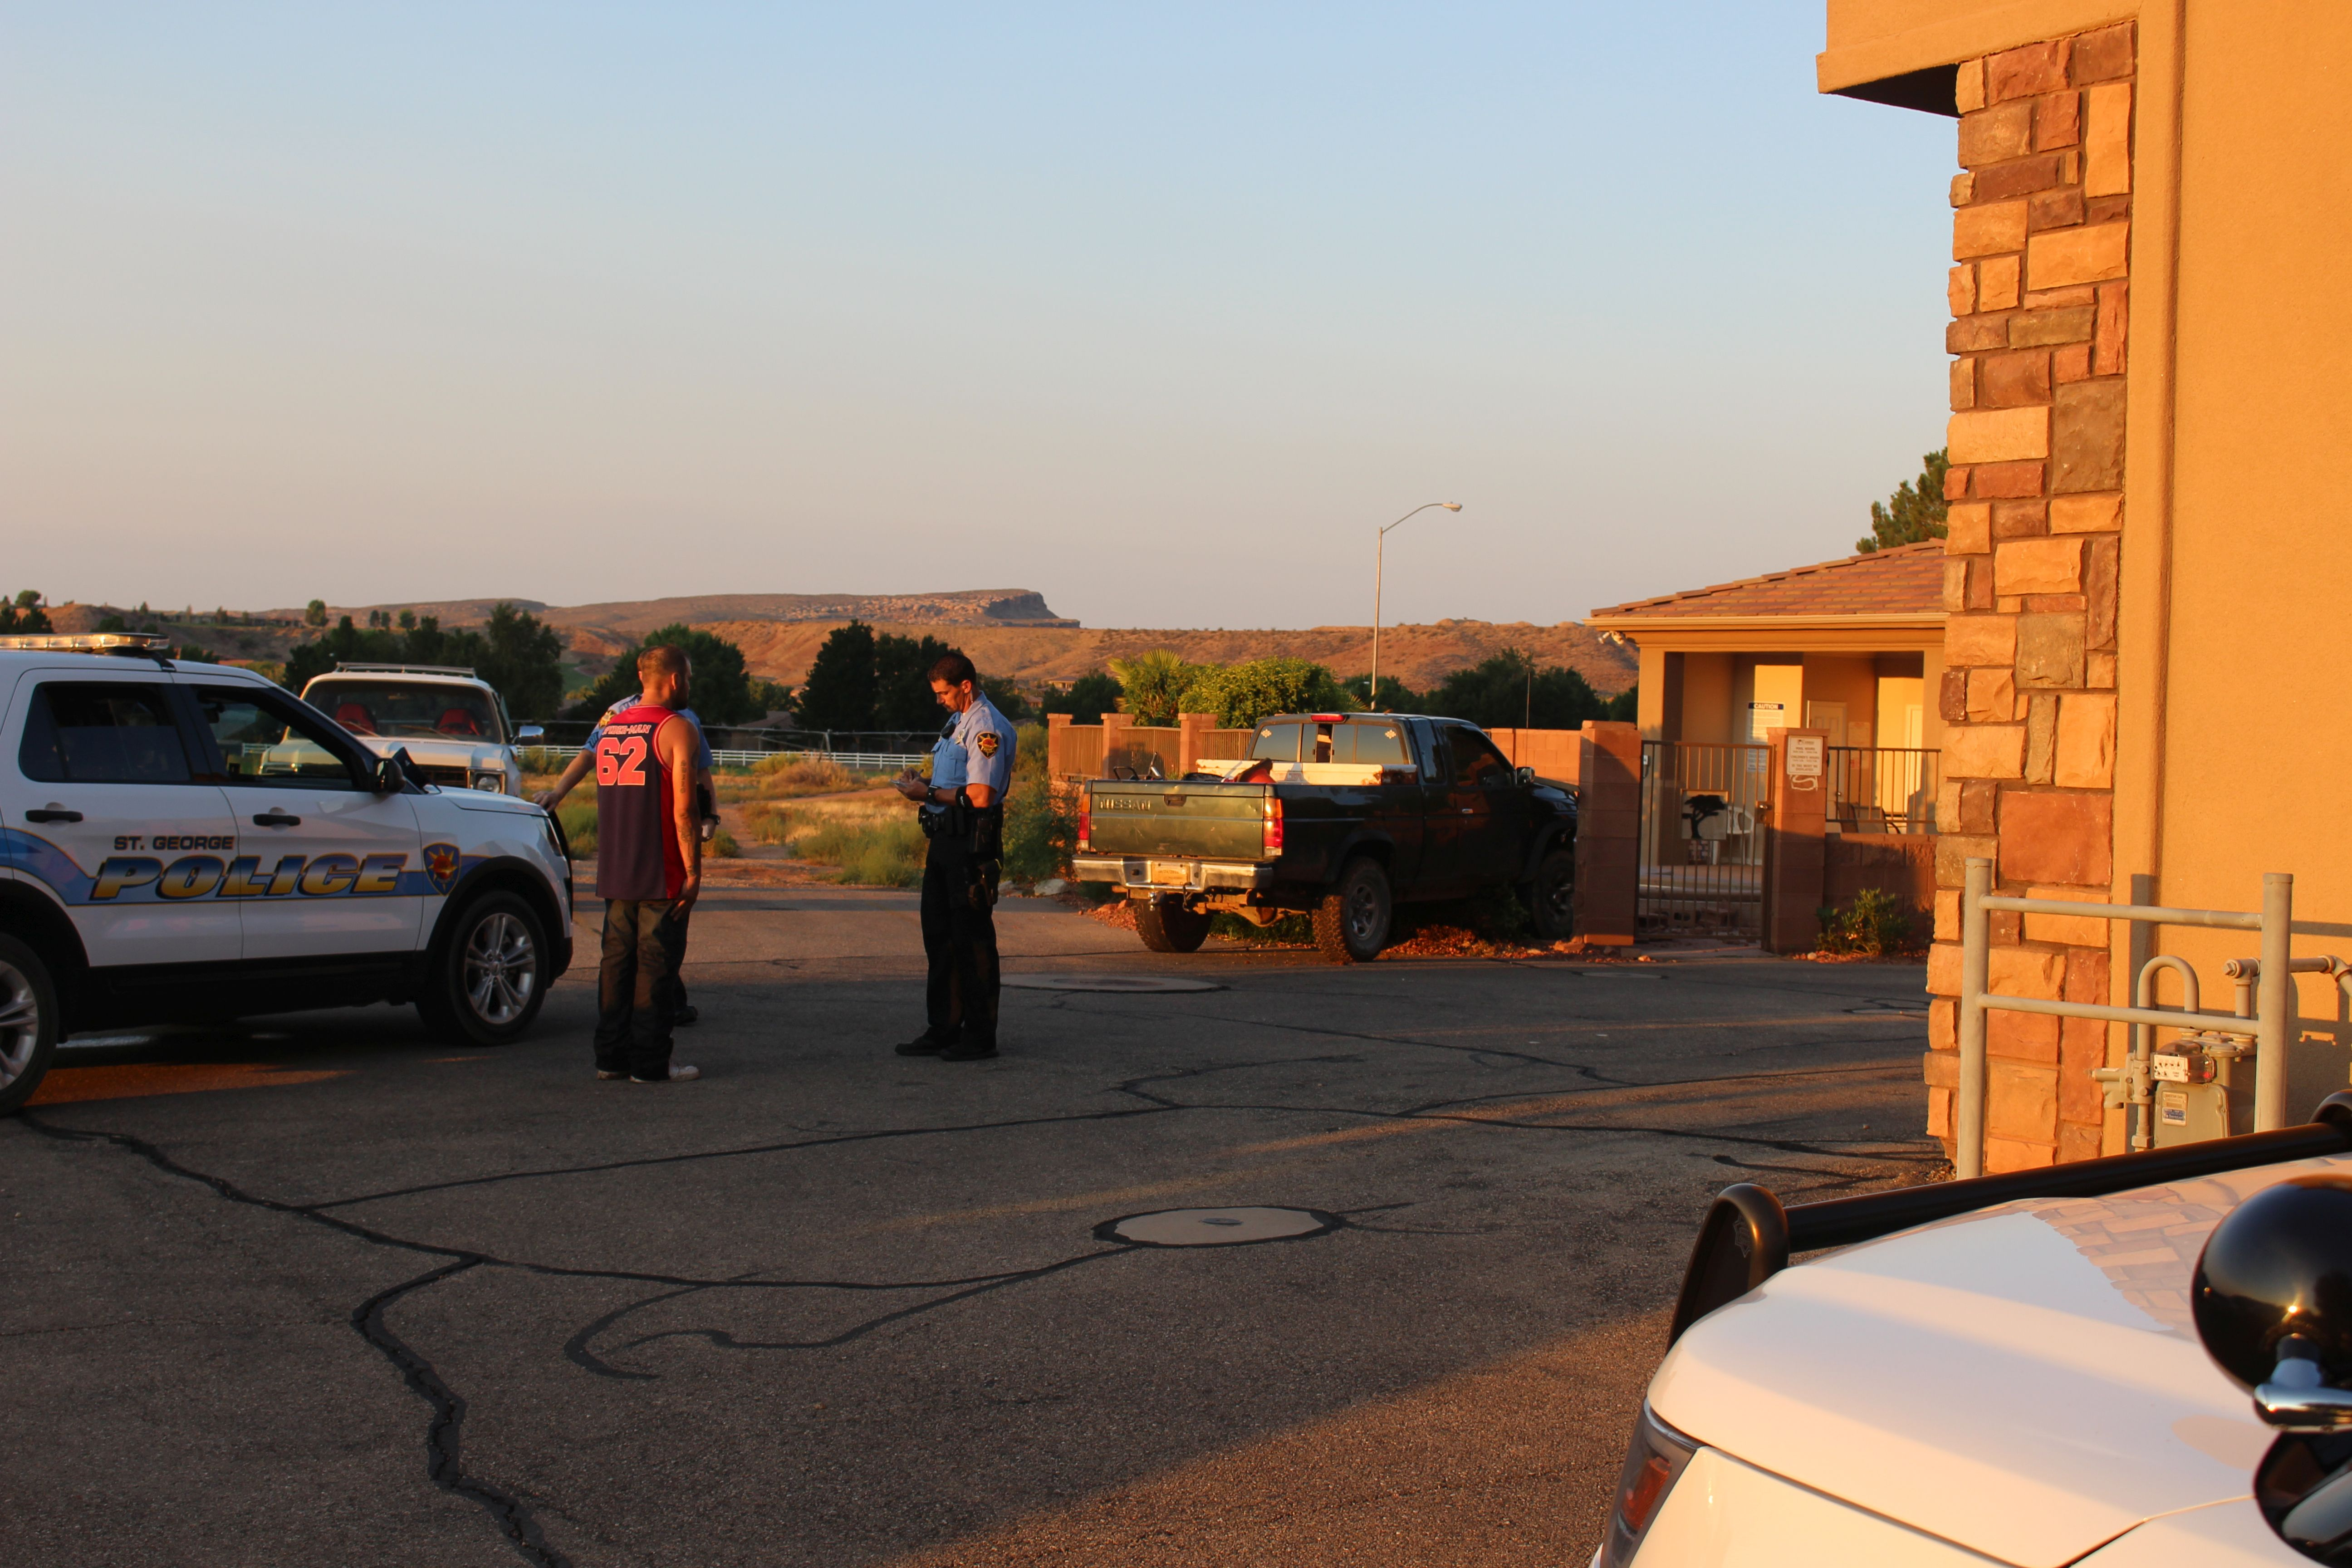 The man who allegedly drove his truck into a brick wall surrounding a swimming pool is given a field sobriety test by St. George Police officers Saturday morning. St. George, Utah, Aug. 20, 2016 | Photo by Ric Wayman, St. George News